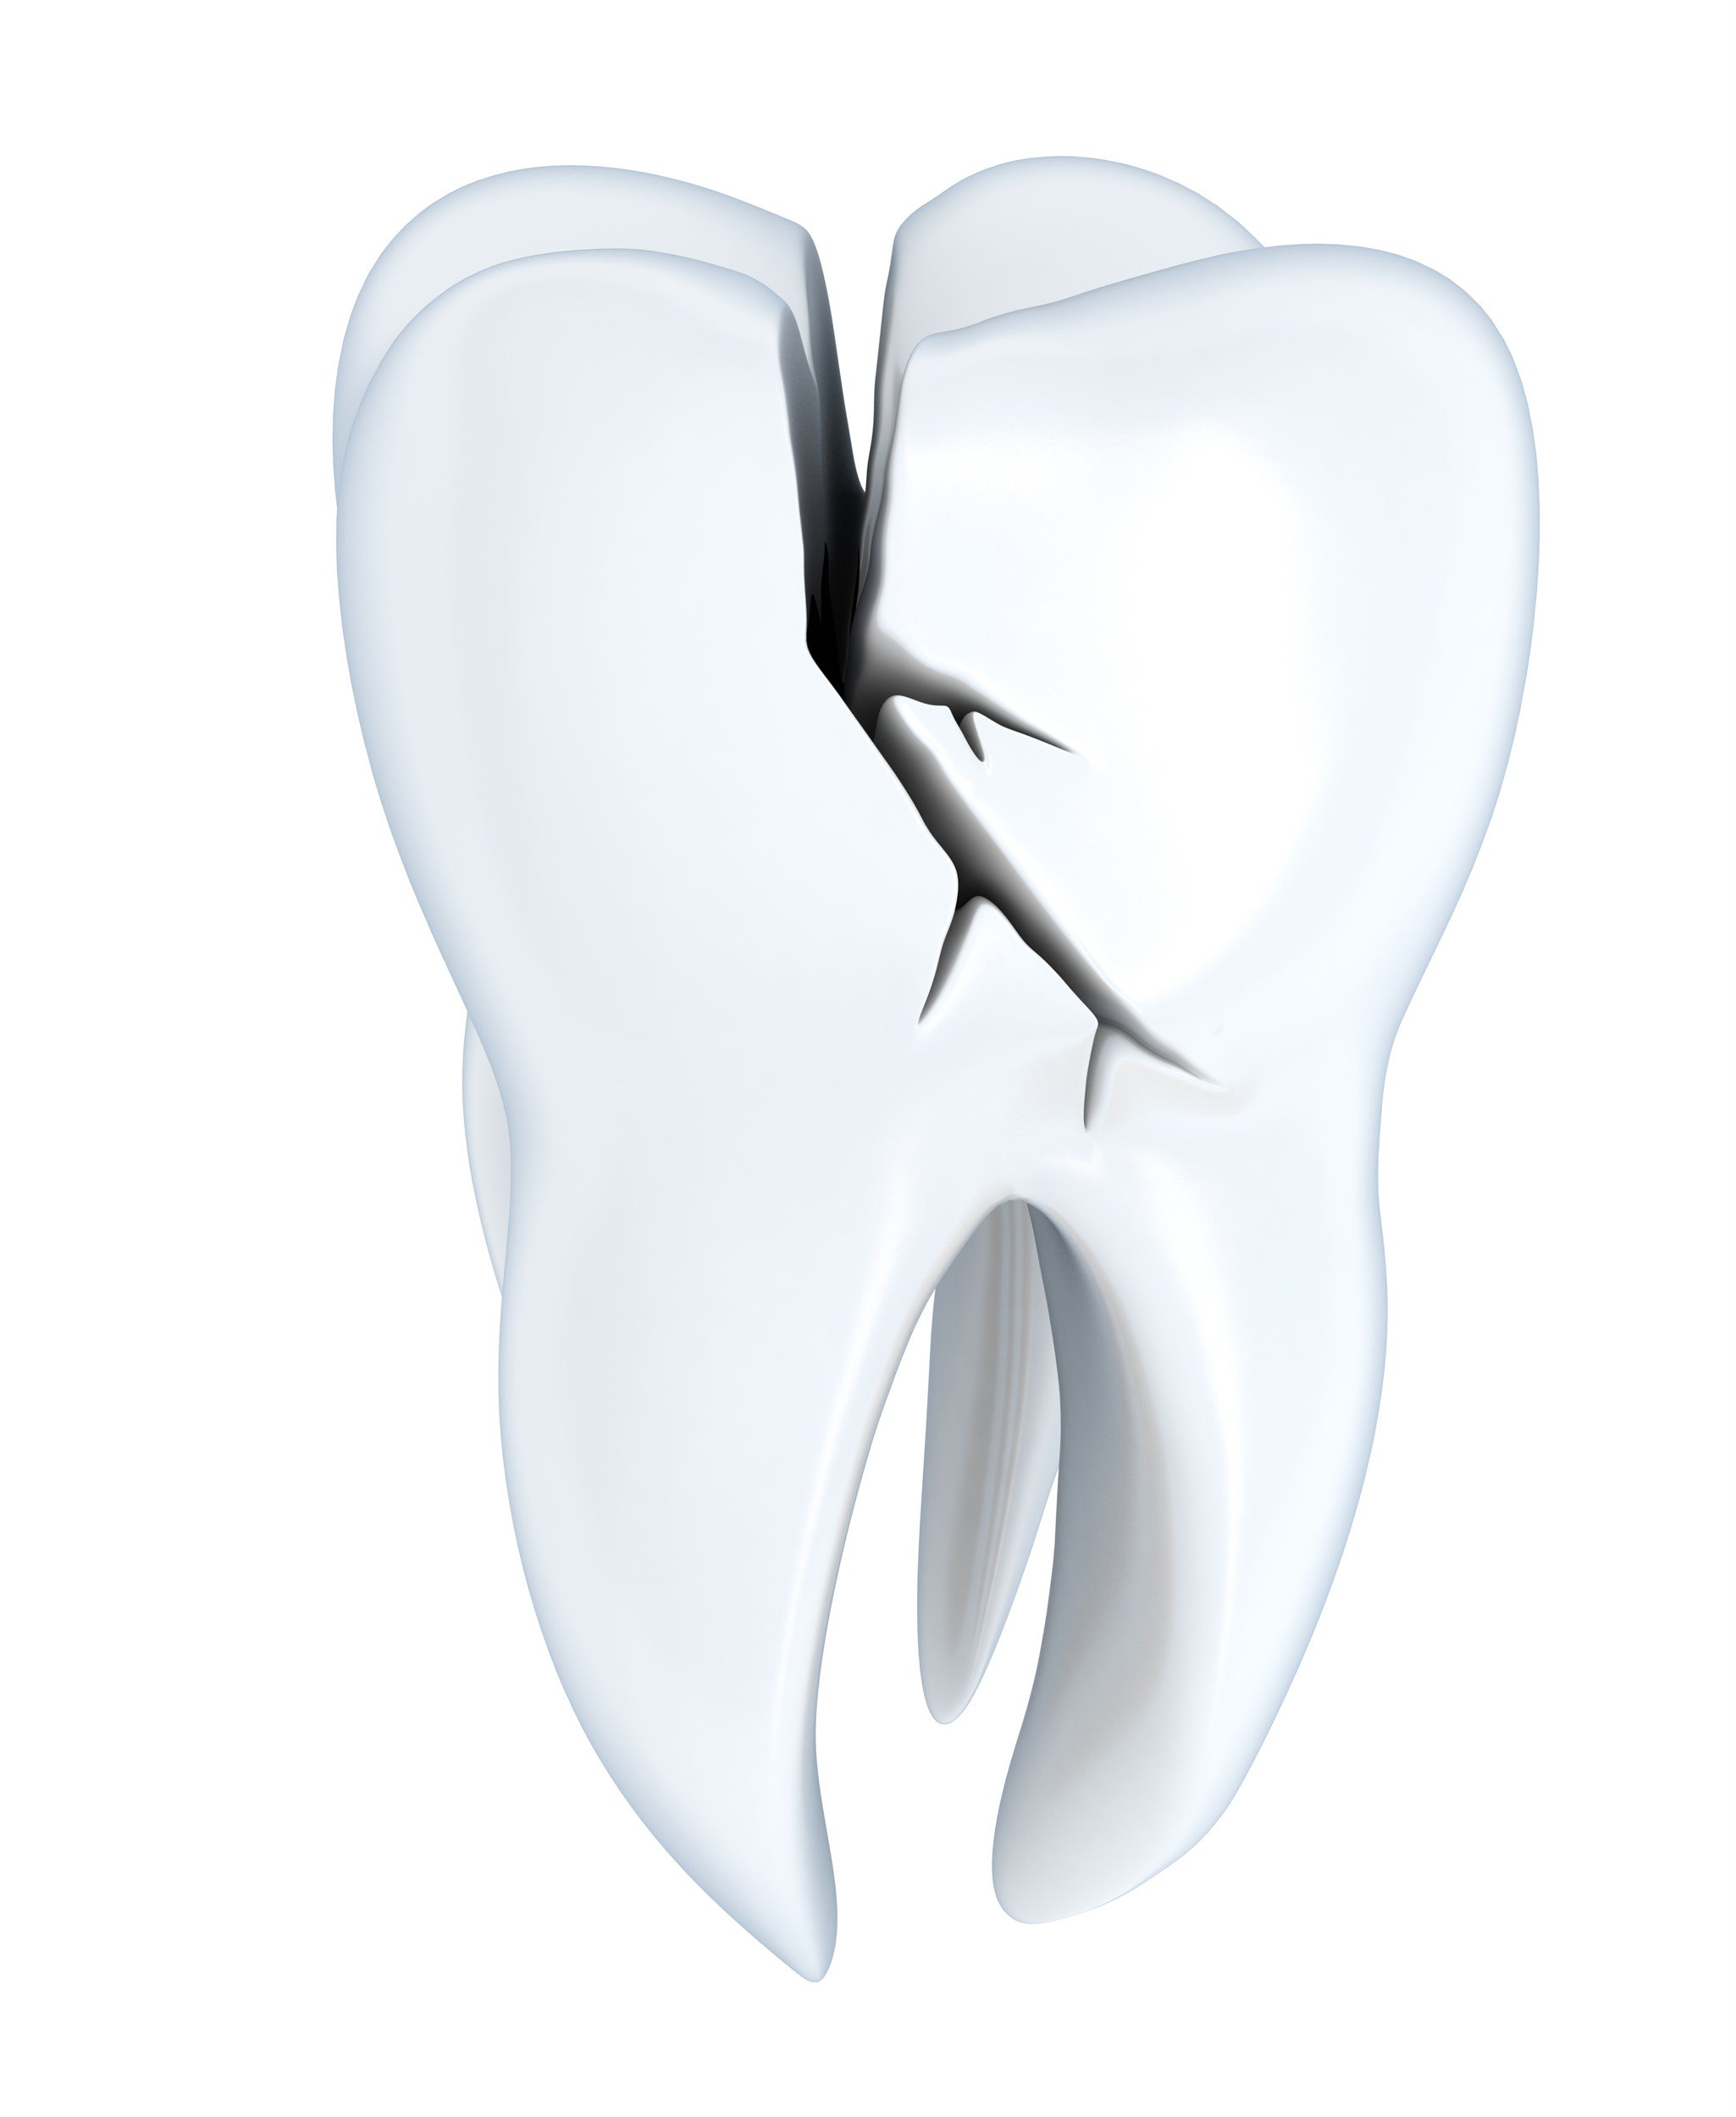 cracked tooth treatment